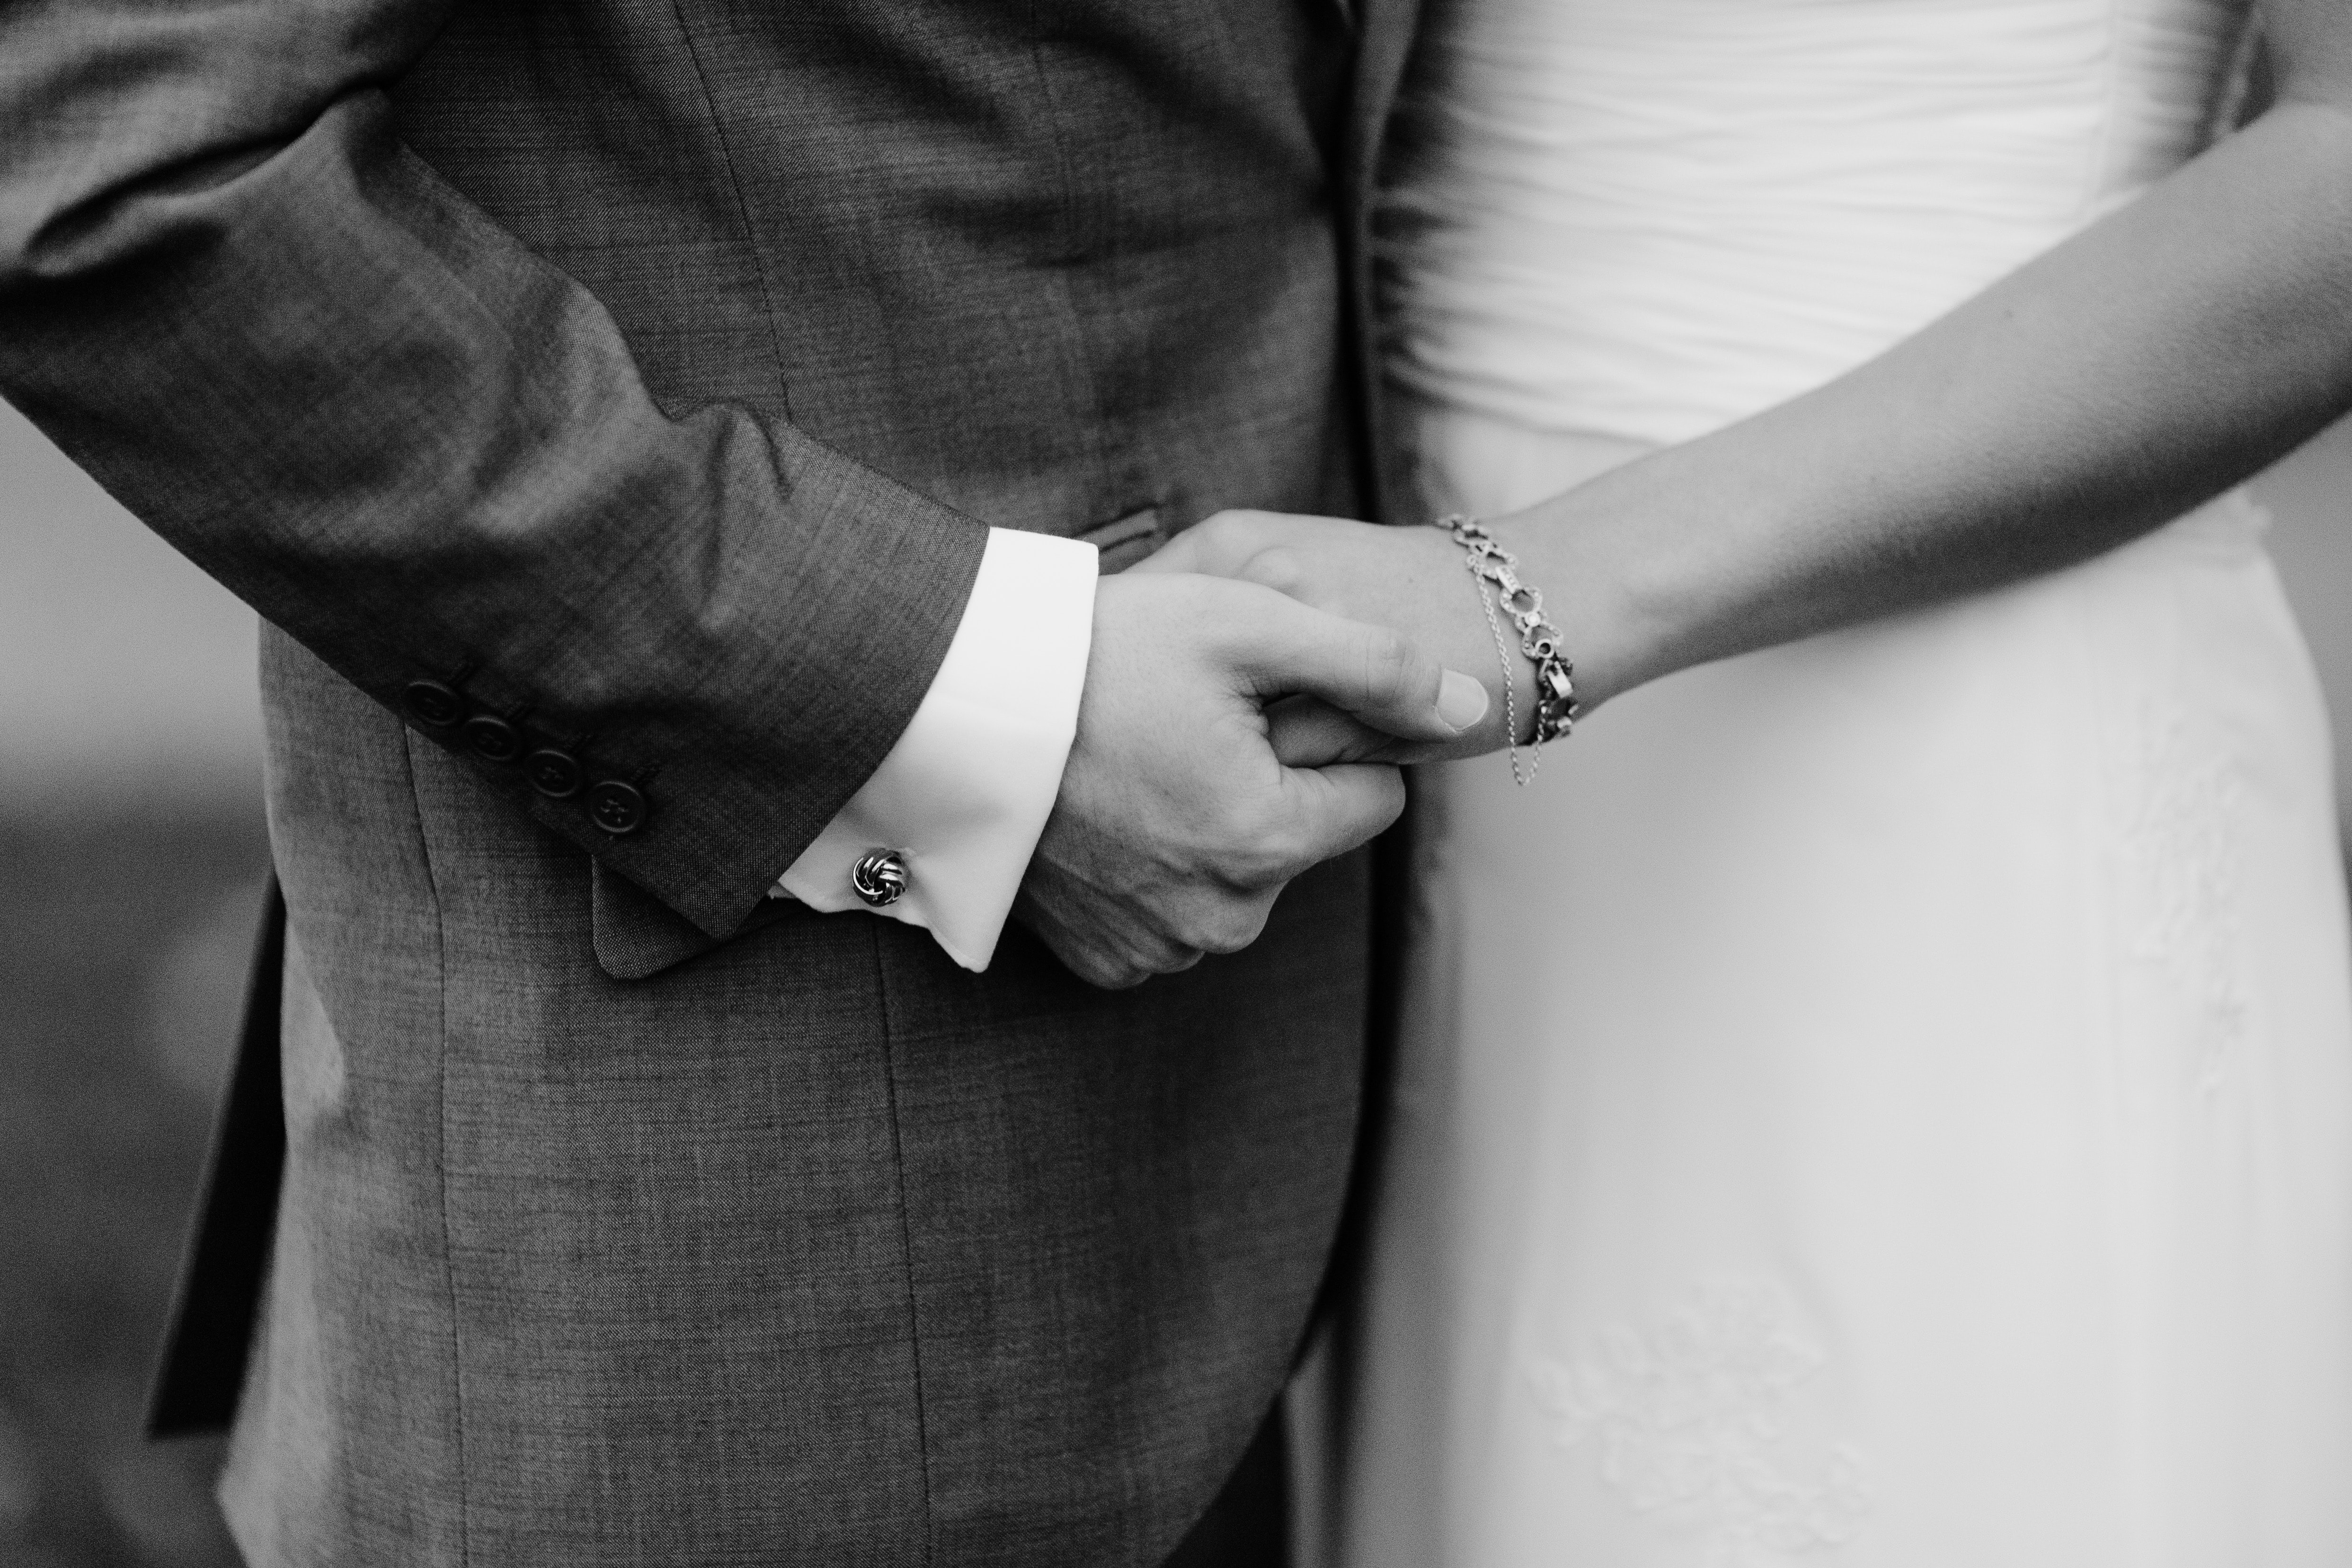 grayscale photo of man and woman holding each others hands